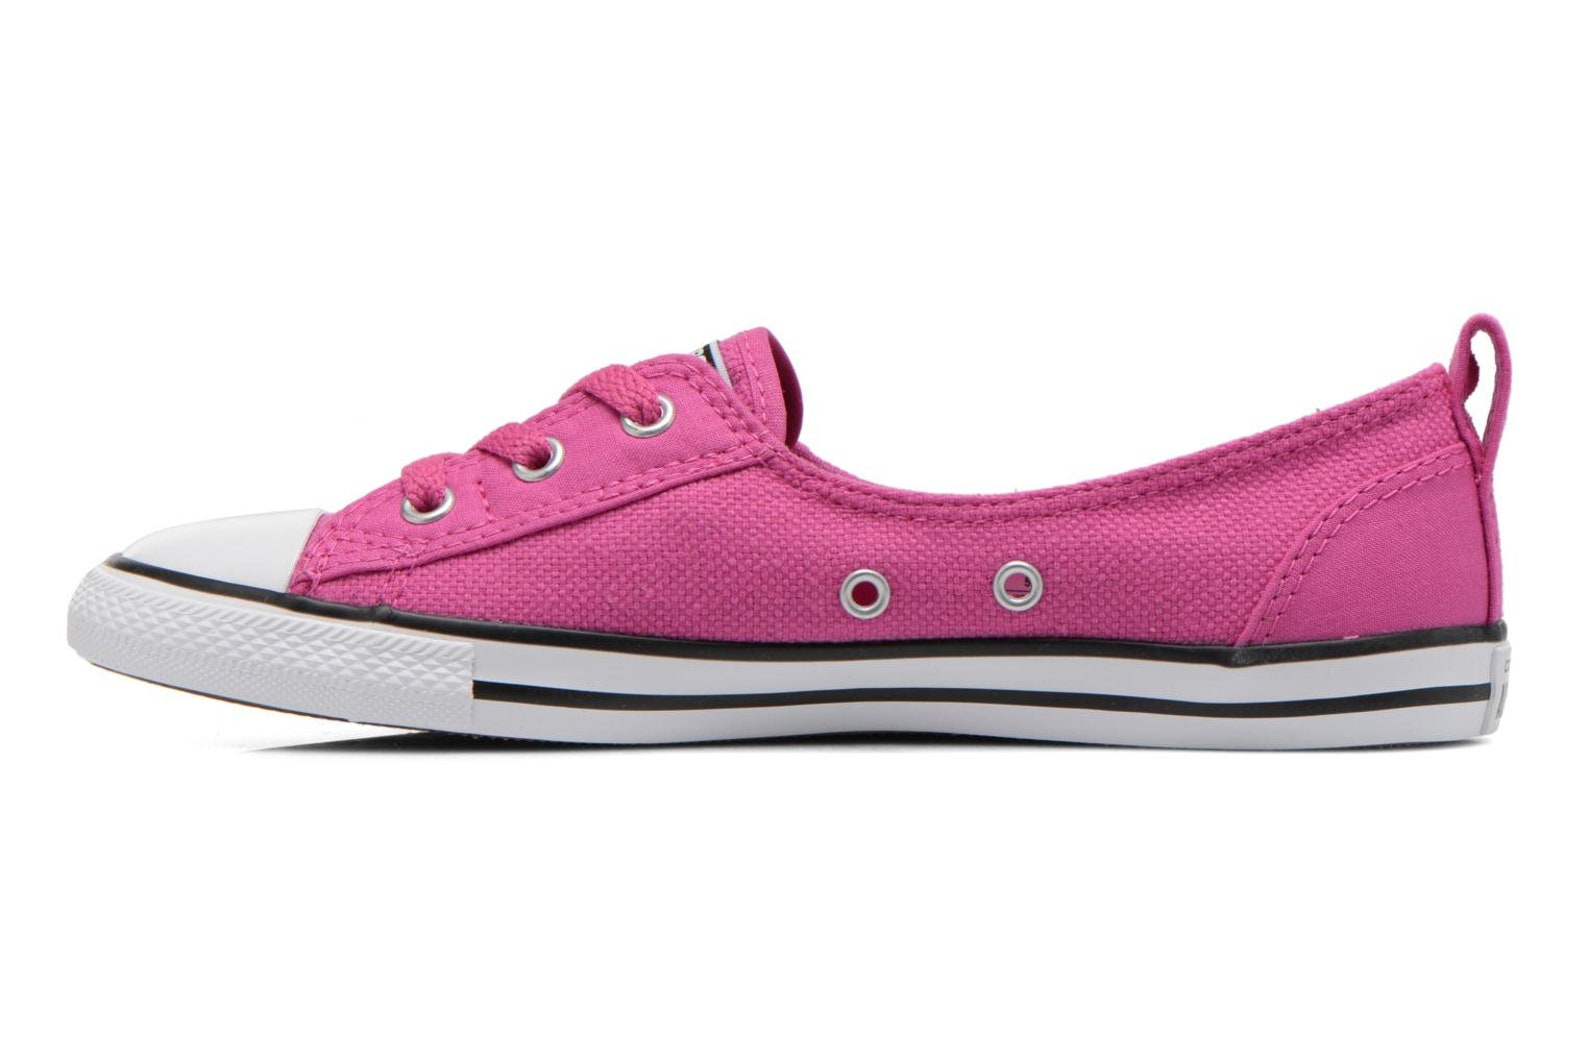 pink converse slip on fuchsia rose low ballet flat wedding lace w/ swarovski crystal chuck taylor rhinestone all star bride snea